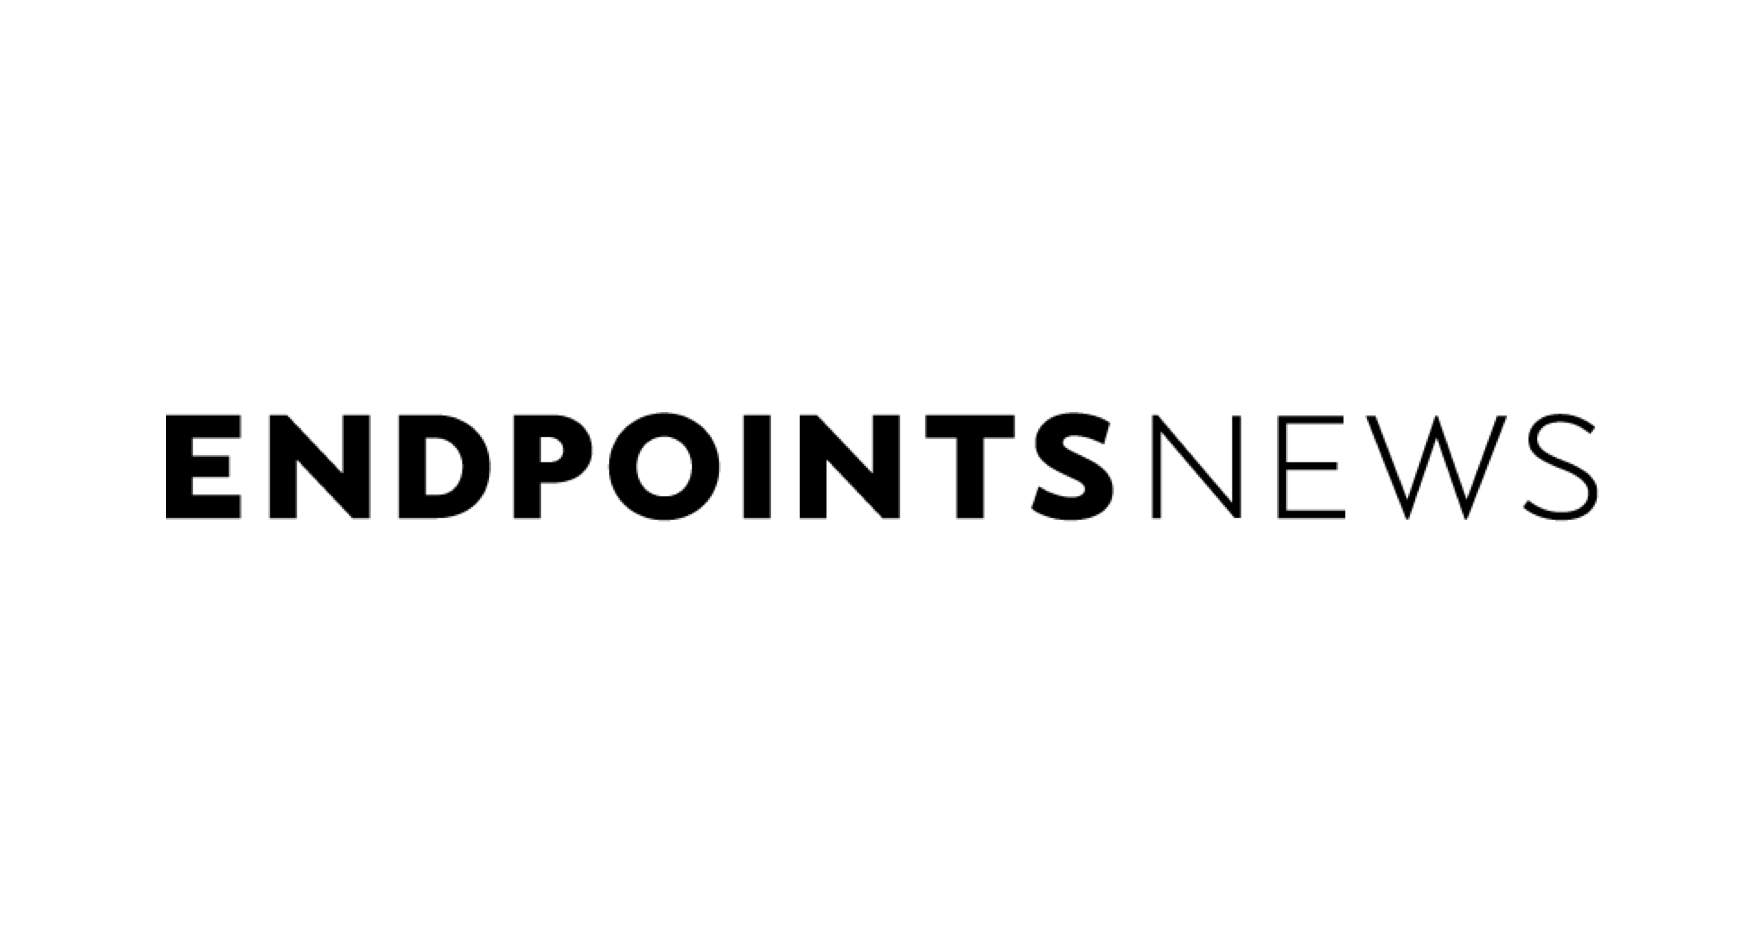 Featured article on Endpoints News